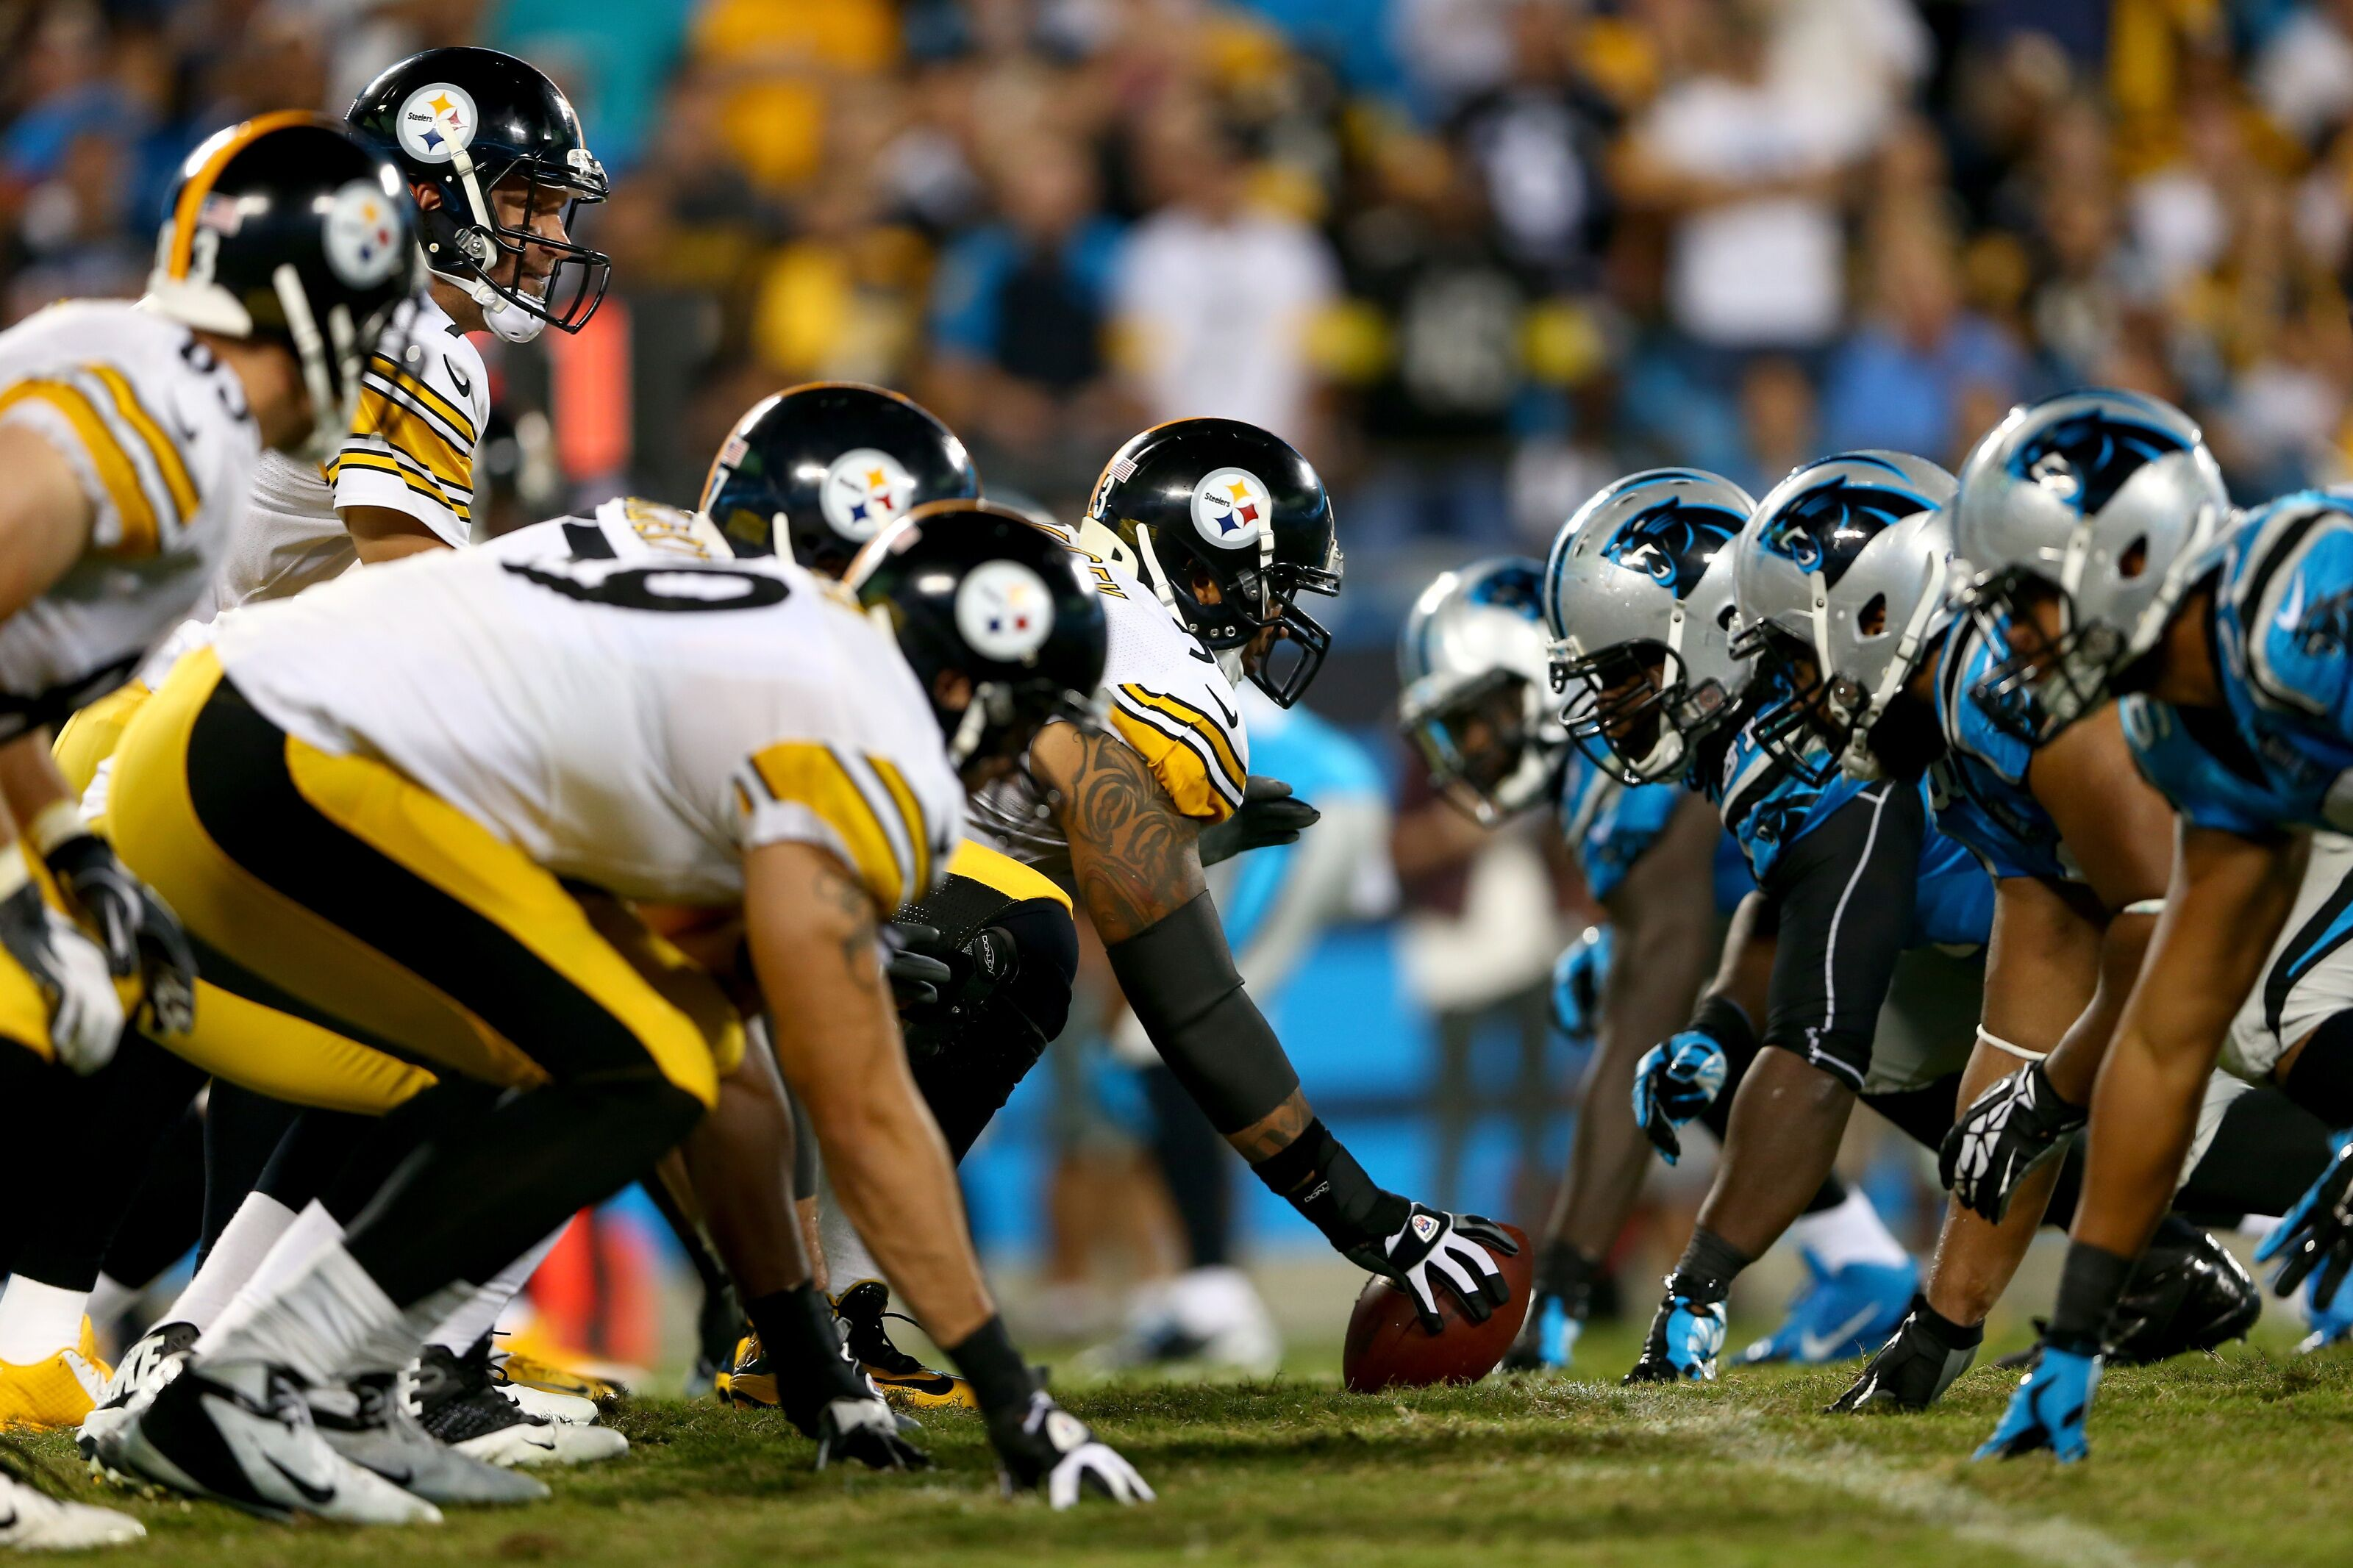 f12a7de4f Carolina Panthers at Pittsburgh Steelers Week 10 game information